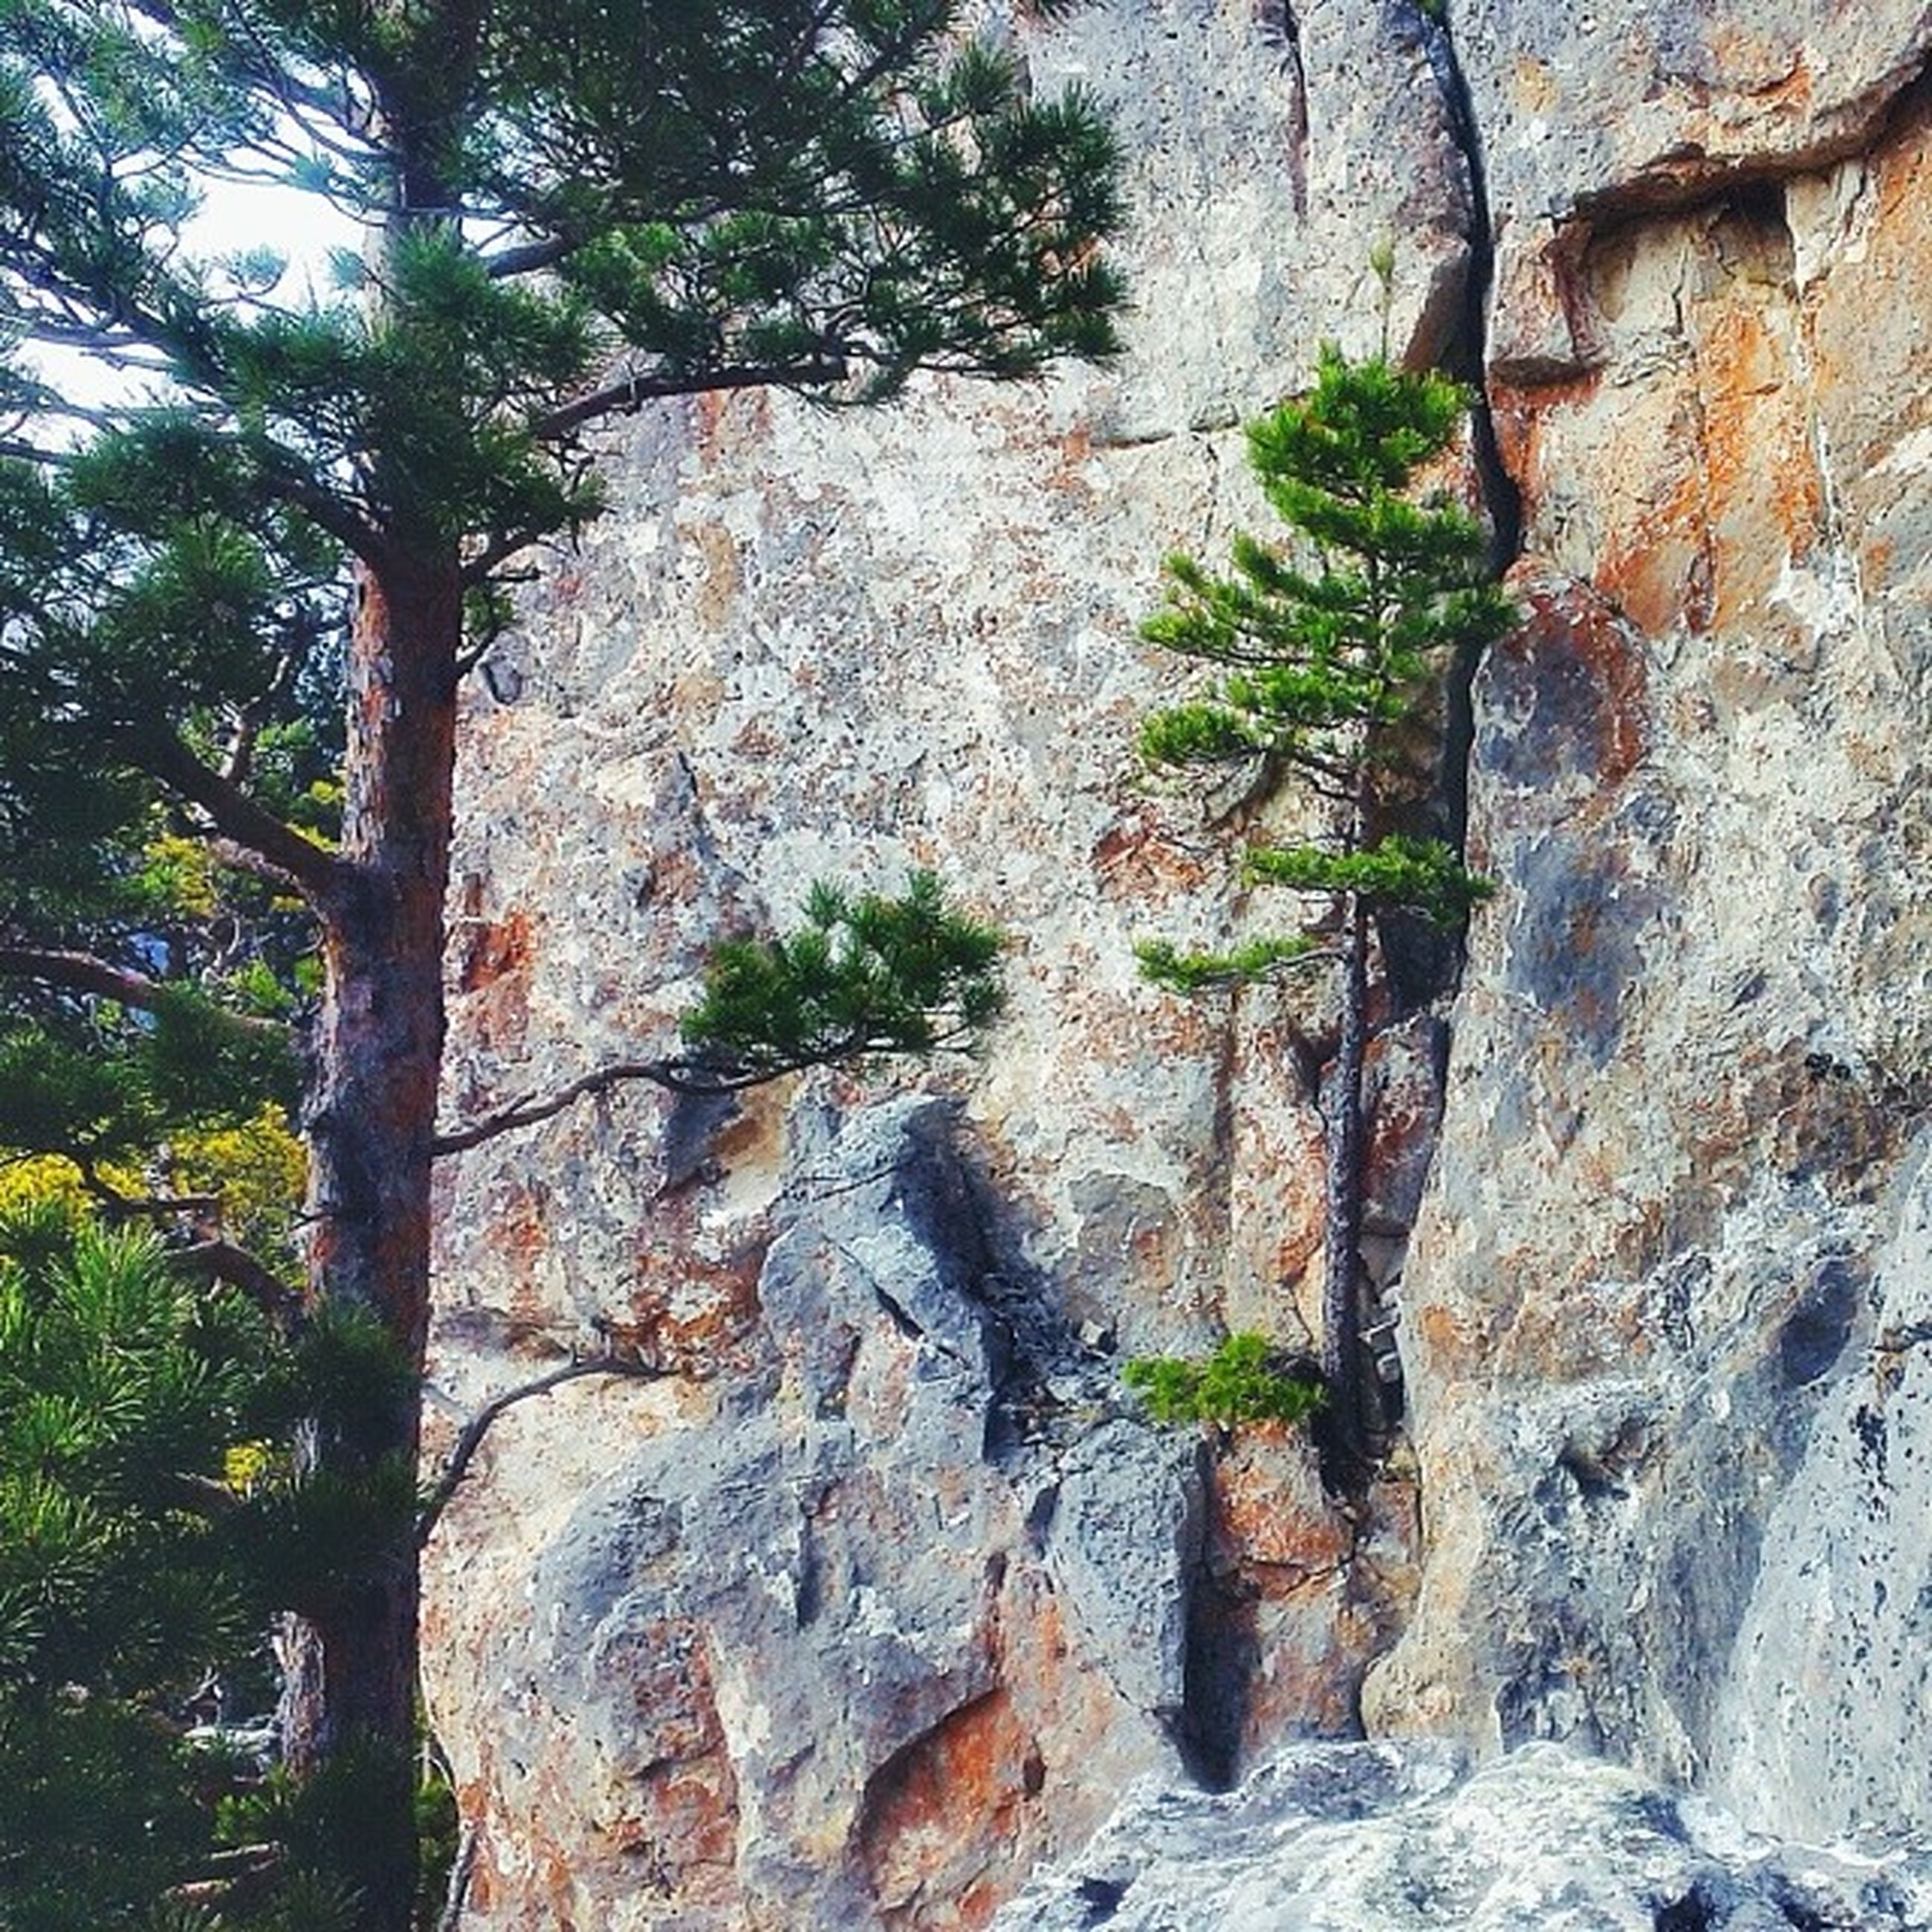 tree, growth, tree trunk, nature, tranquility, forest, green color, beauty in nature, textured, plant, rock - object, moss, rough, day, growing, tranquil scene, outdoors, branch, rock formation, no people